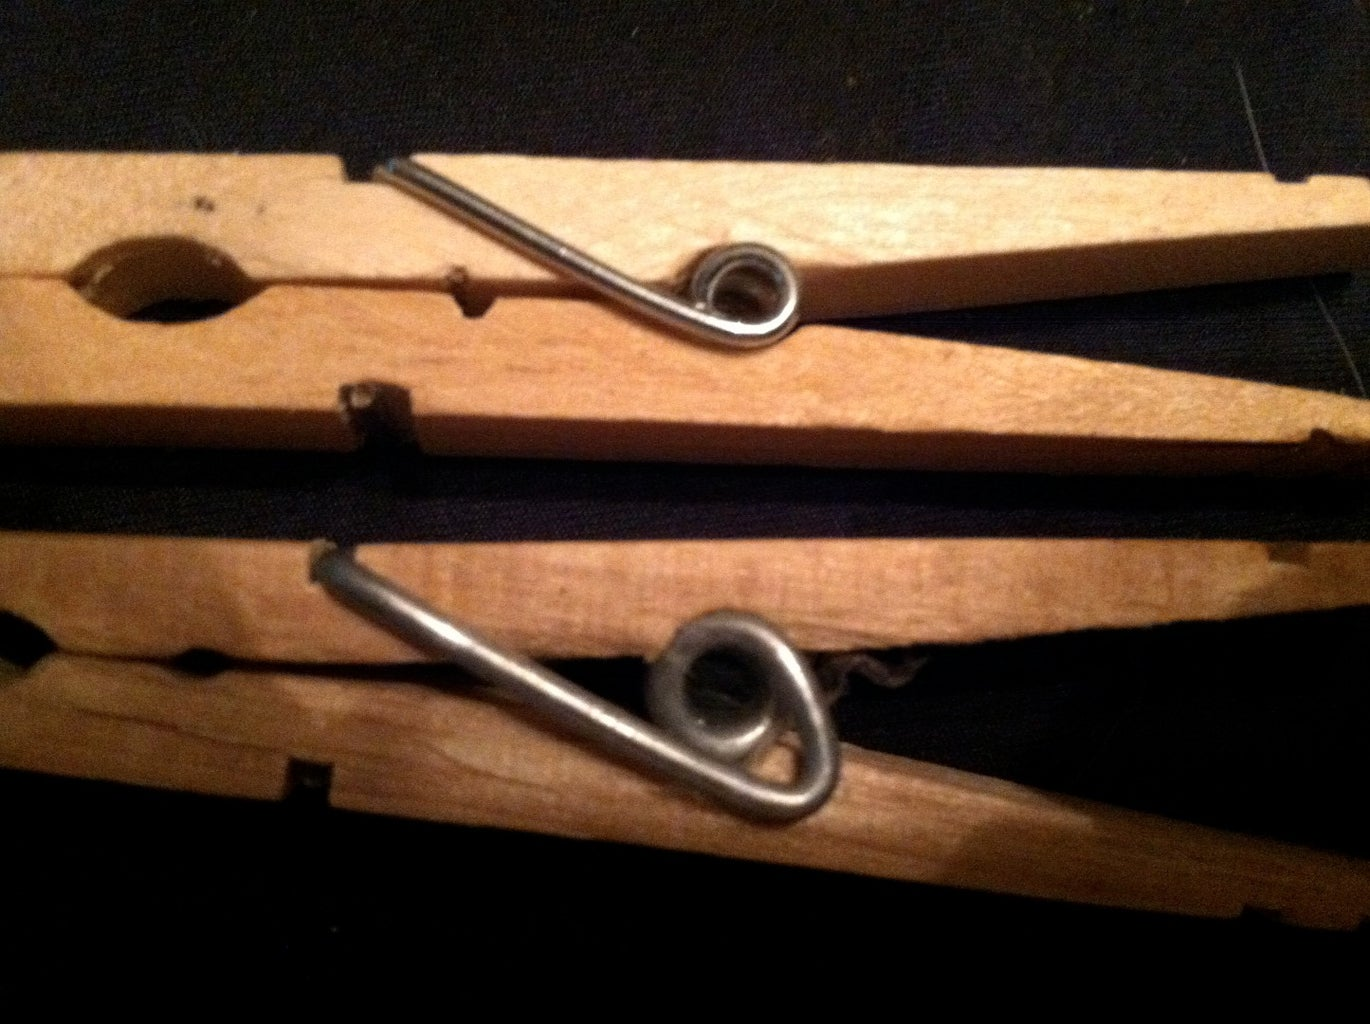 RE-ENGINEERING CLOTHES PINS